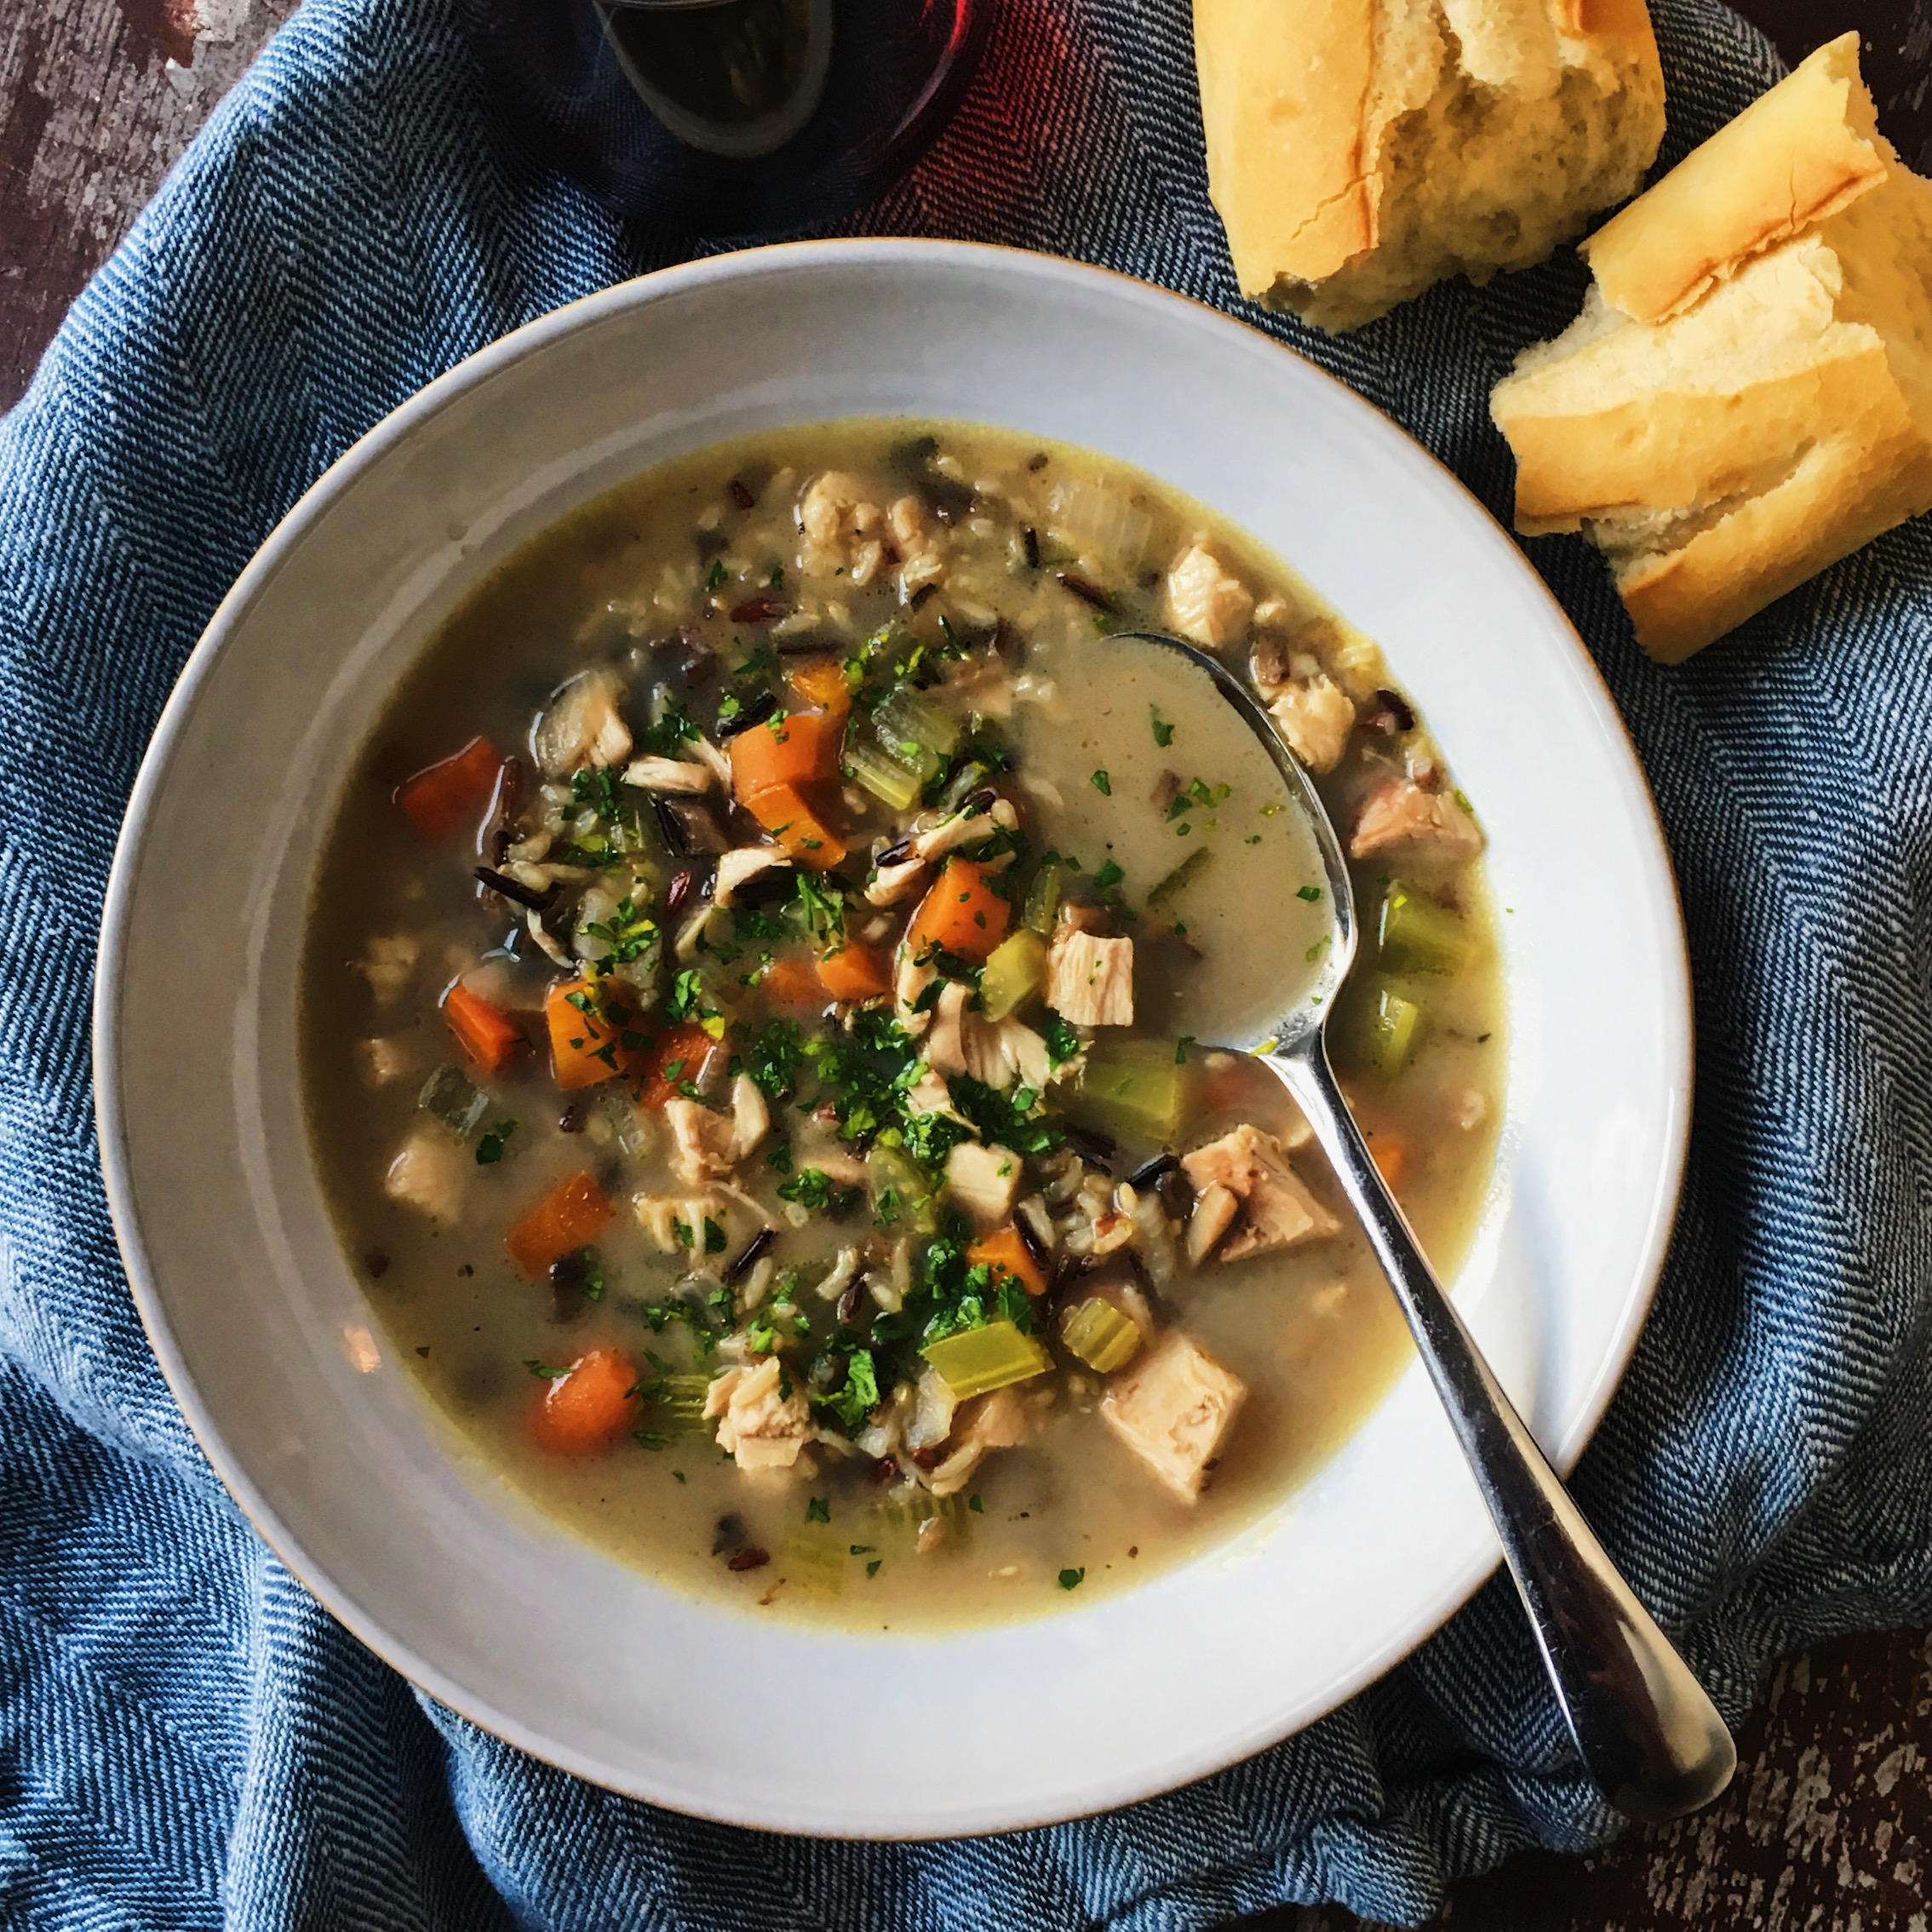 Roasted Chicken, Mushroom and Wild Rice Soup